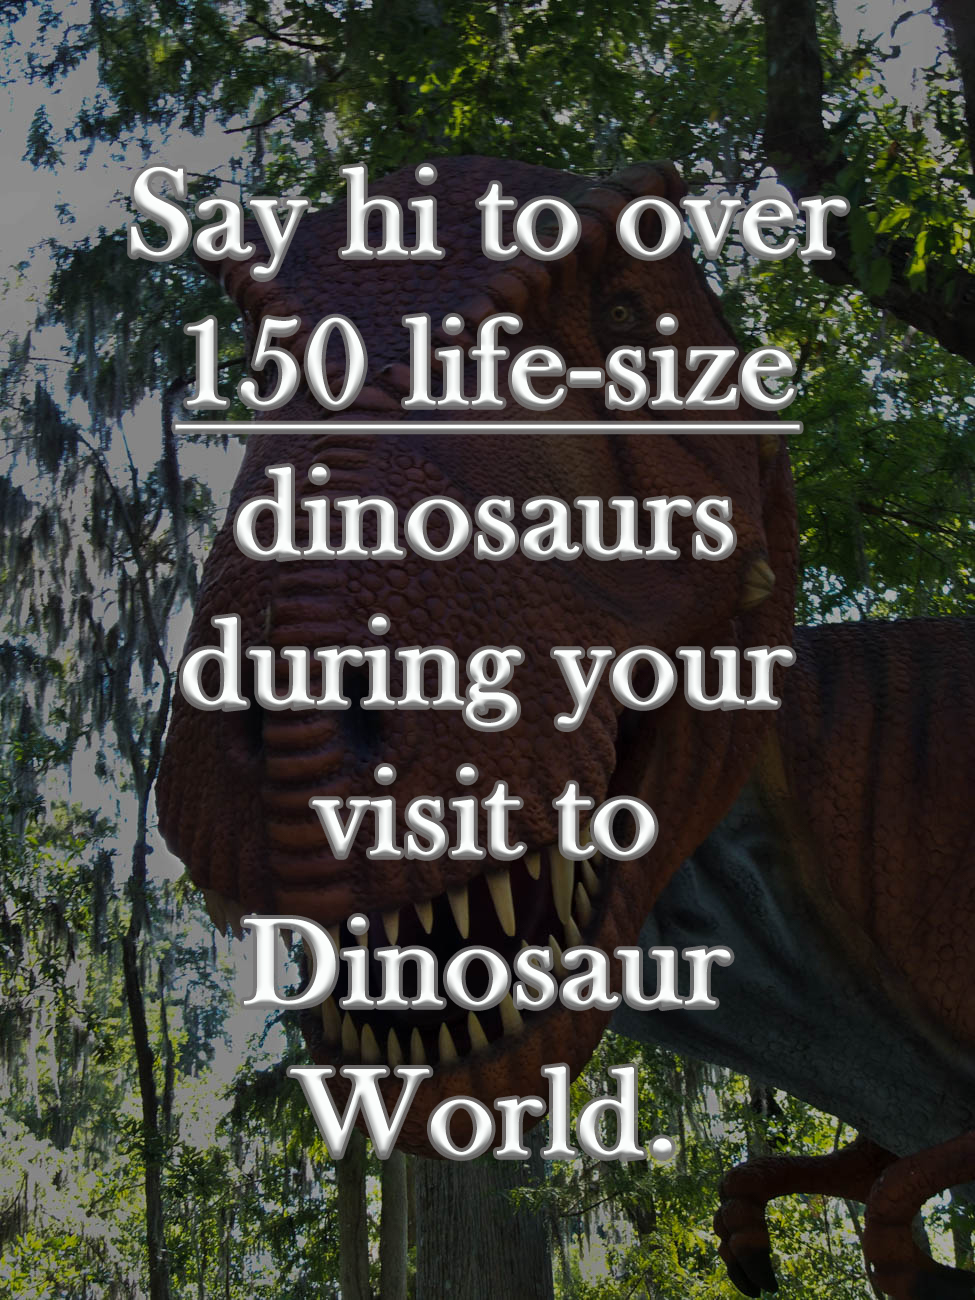 ADDRESS: 711 Mammoth Cave Road, Cave City, KY (42127) / Background image courtesy of Dinosaur World // Published: 7.8.19